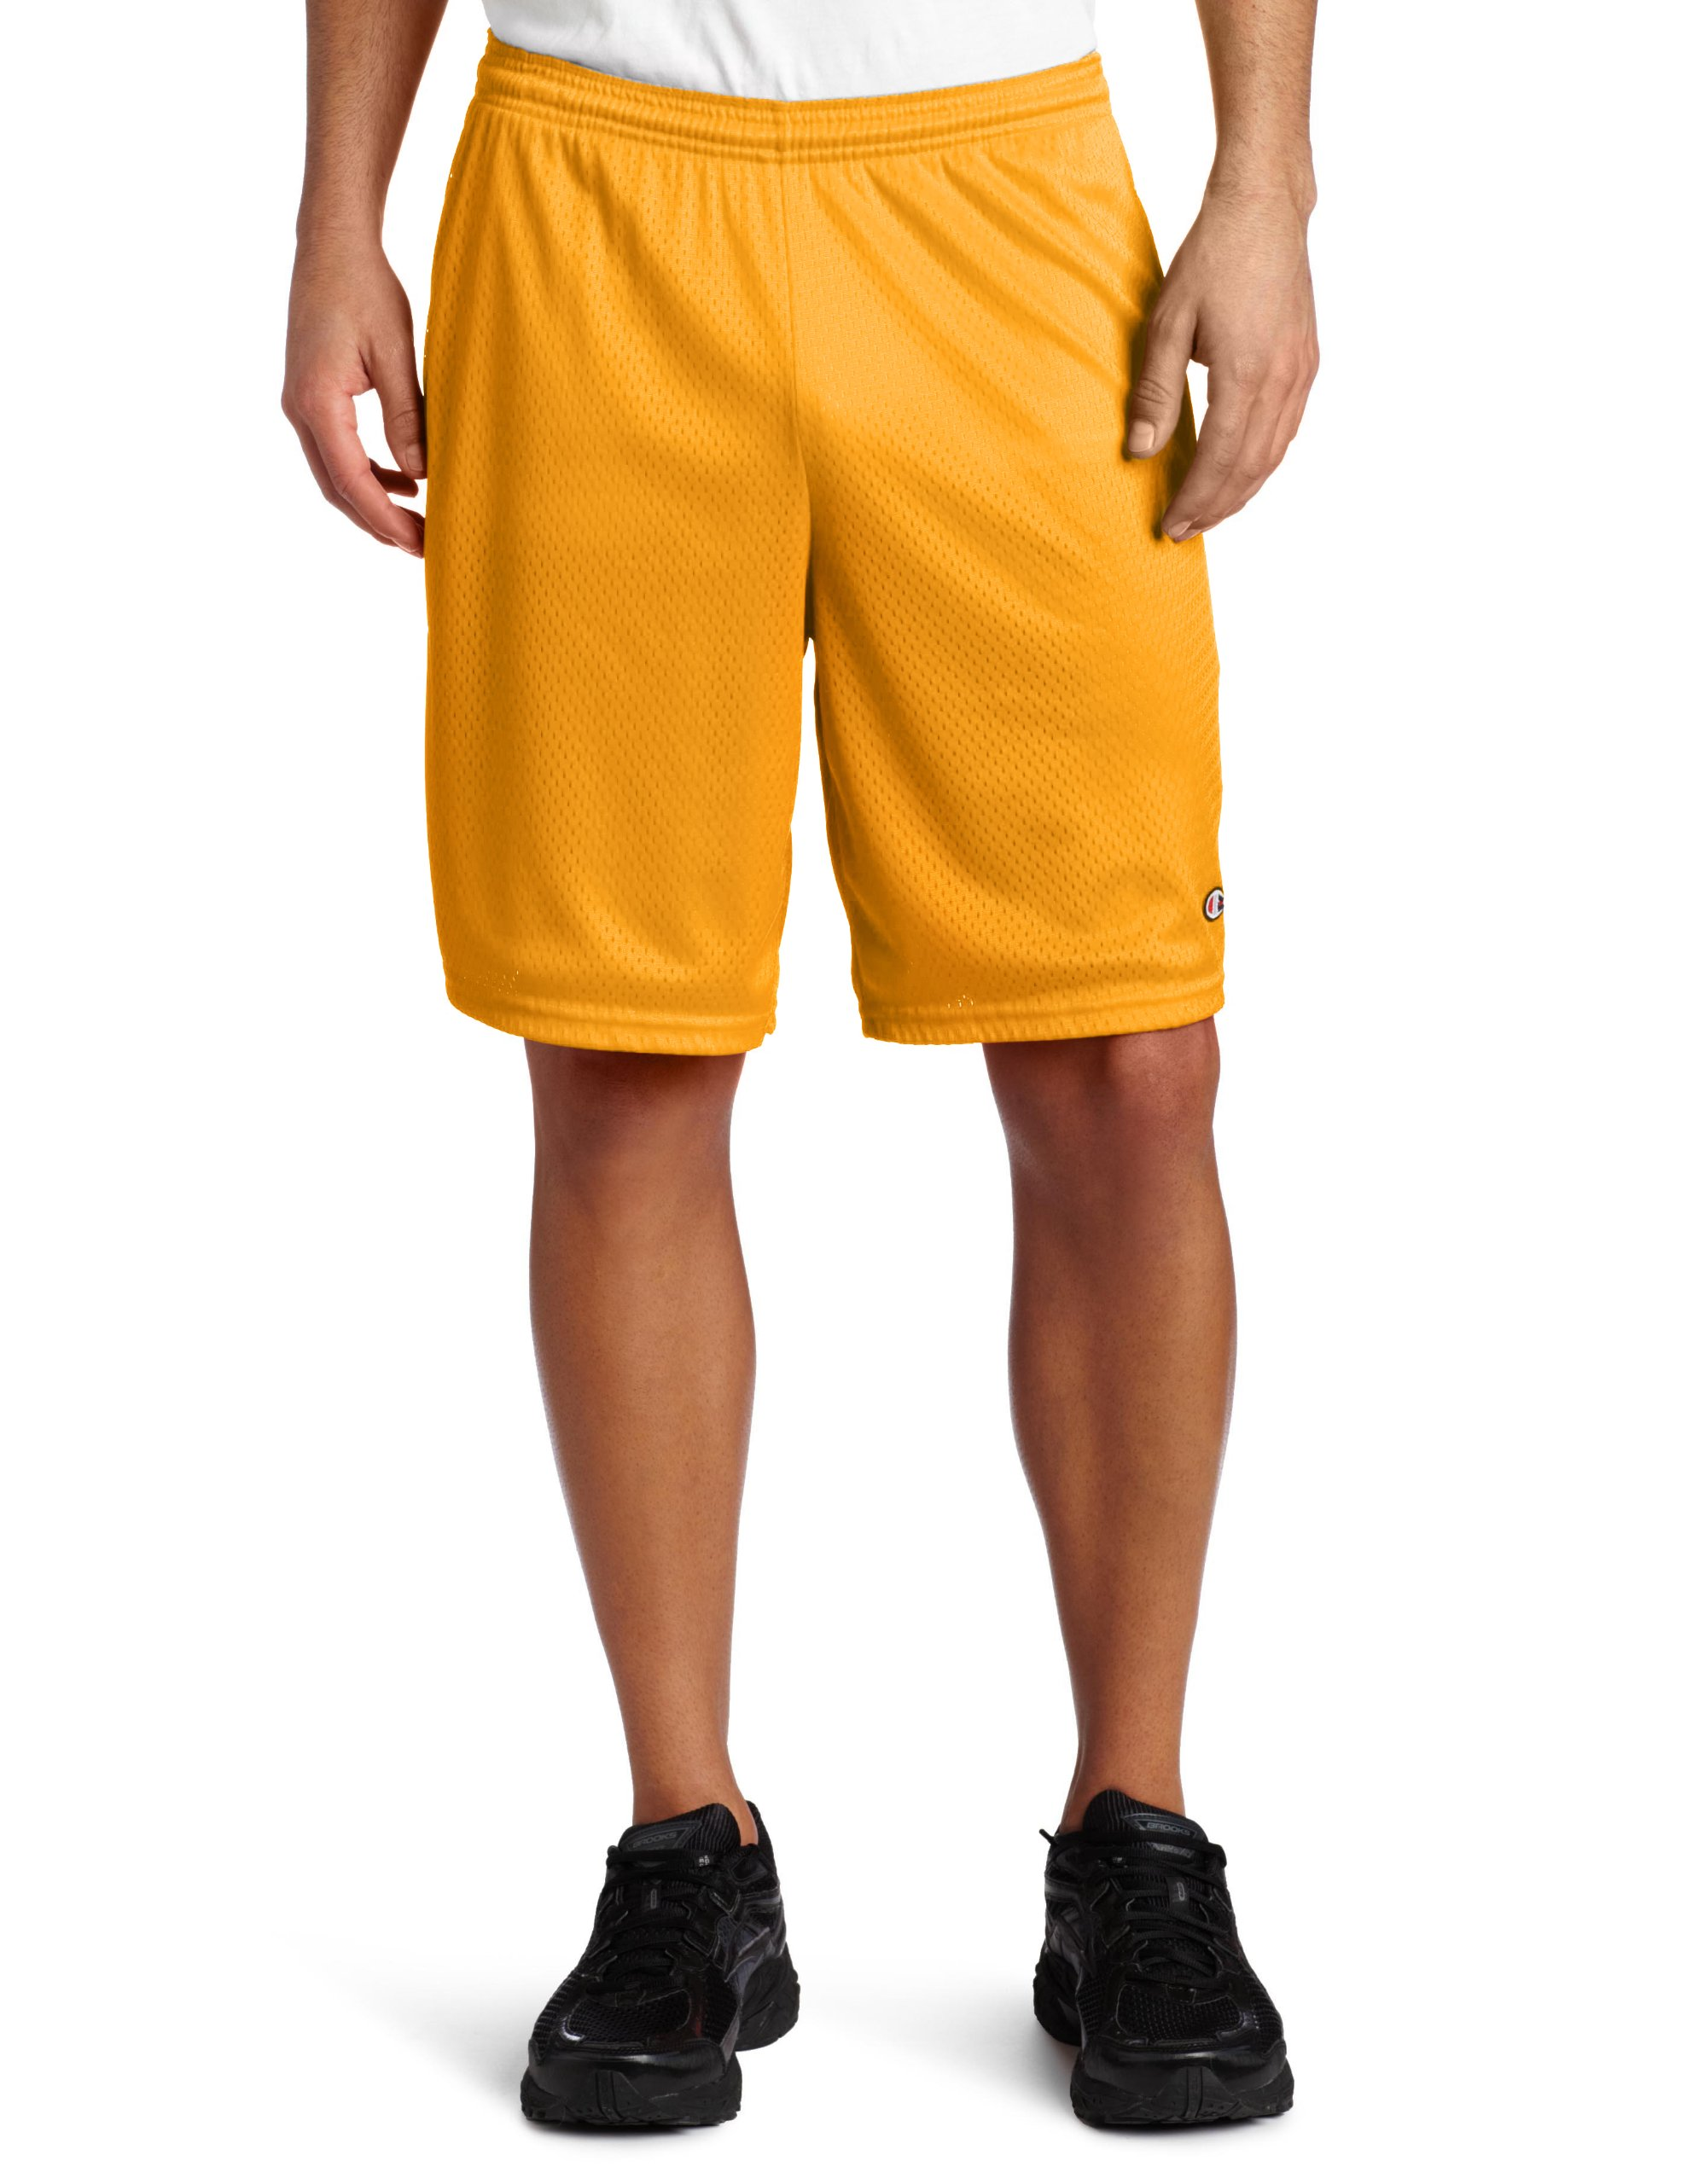 Champion Men's Long Mesh Short With Pockets, Sun Gold, Large by Champion